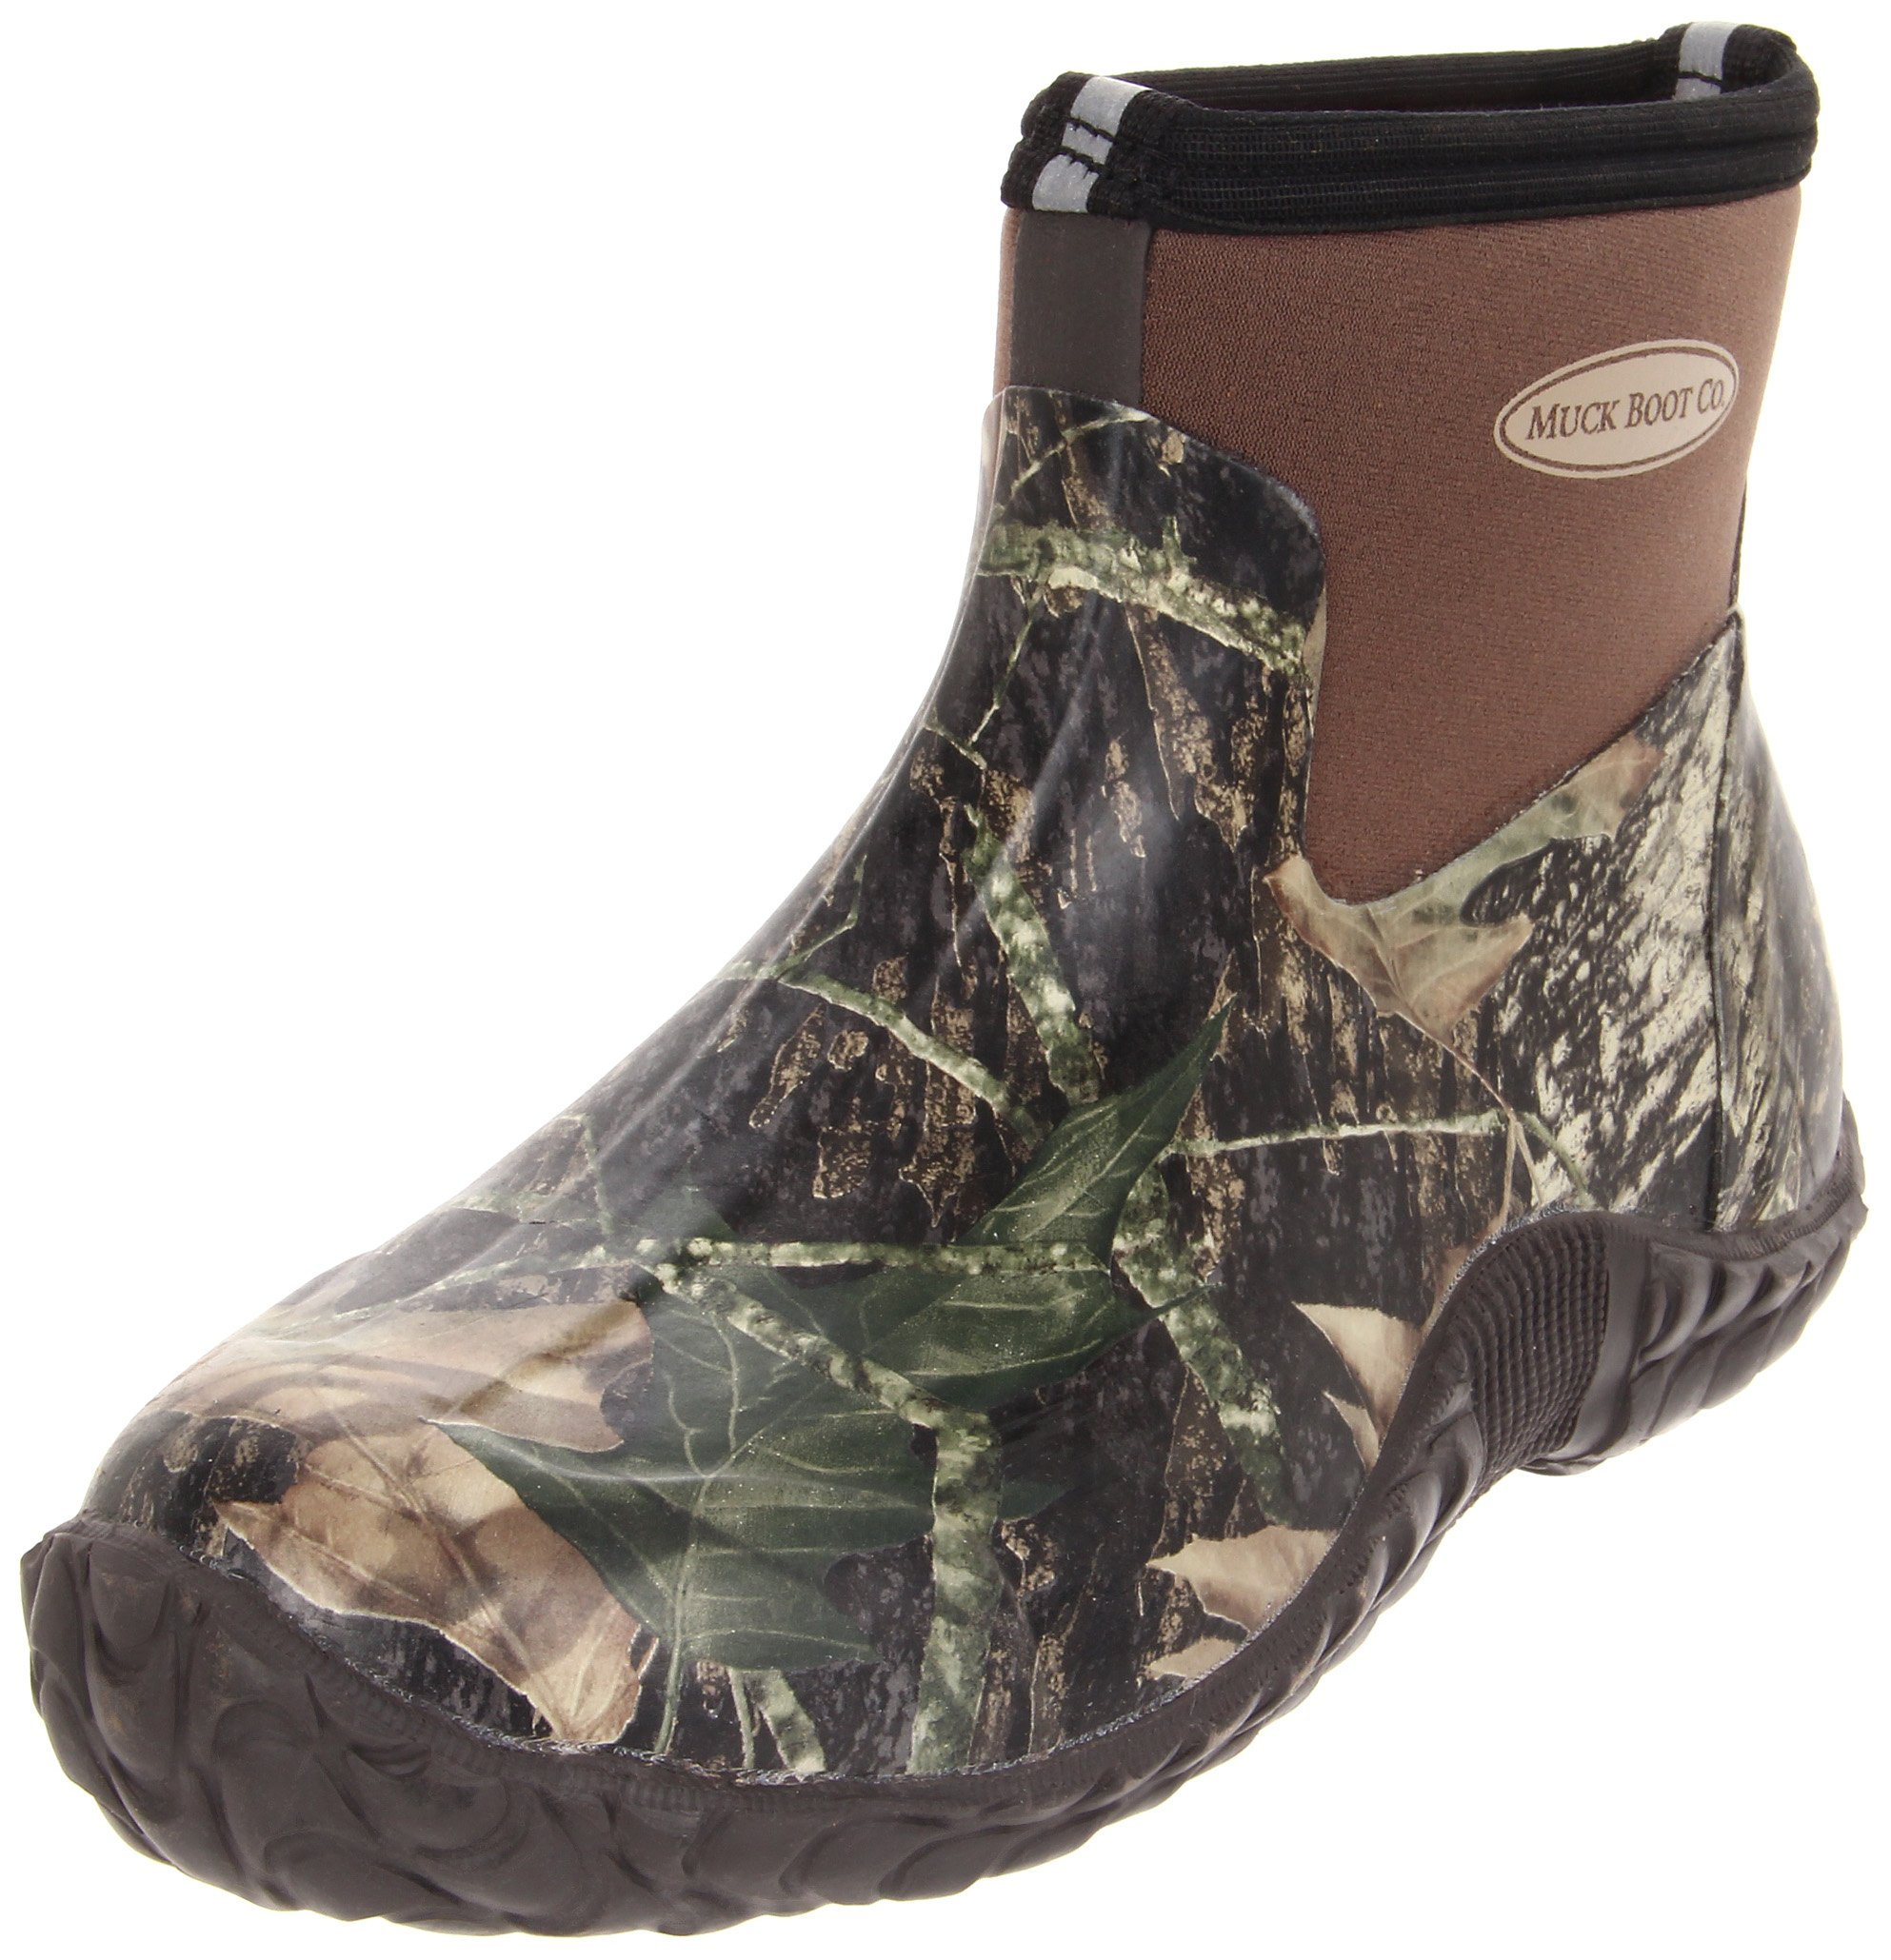 MuckBoots unisex Camo Camp Hunting Boot,Mossy Oak Break-Up,8 M US Mens